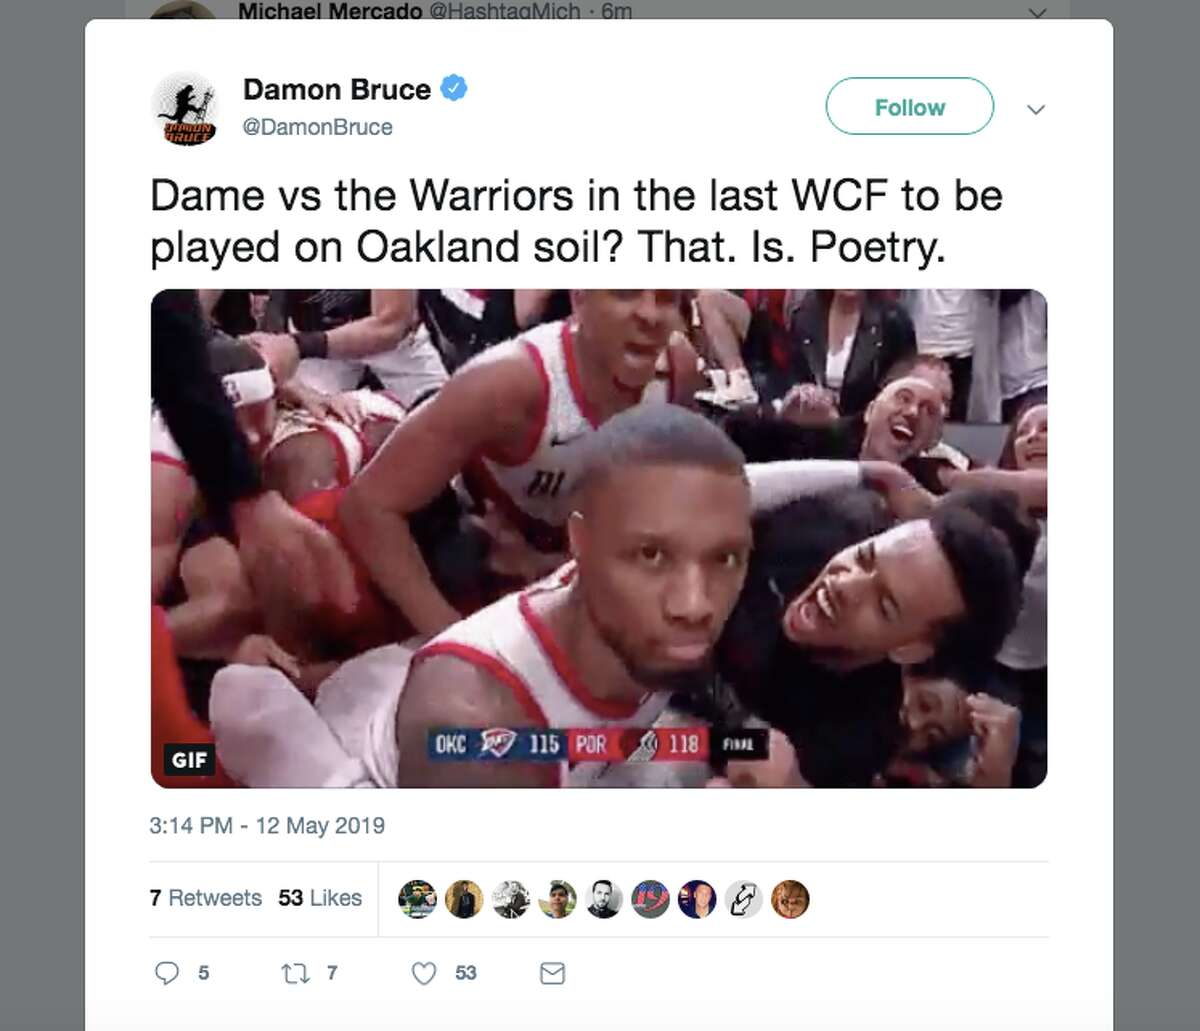 Basketball fans expressed their excitement about Damian Lillard and his Portland Trailblazers coming to play the Golden State Warriors in Oakland for the Western Conference Finals.